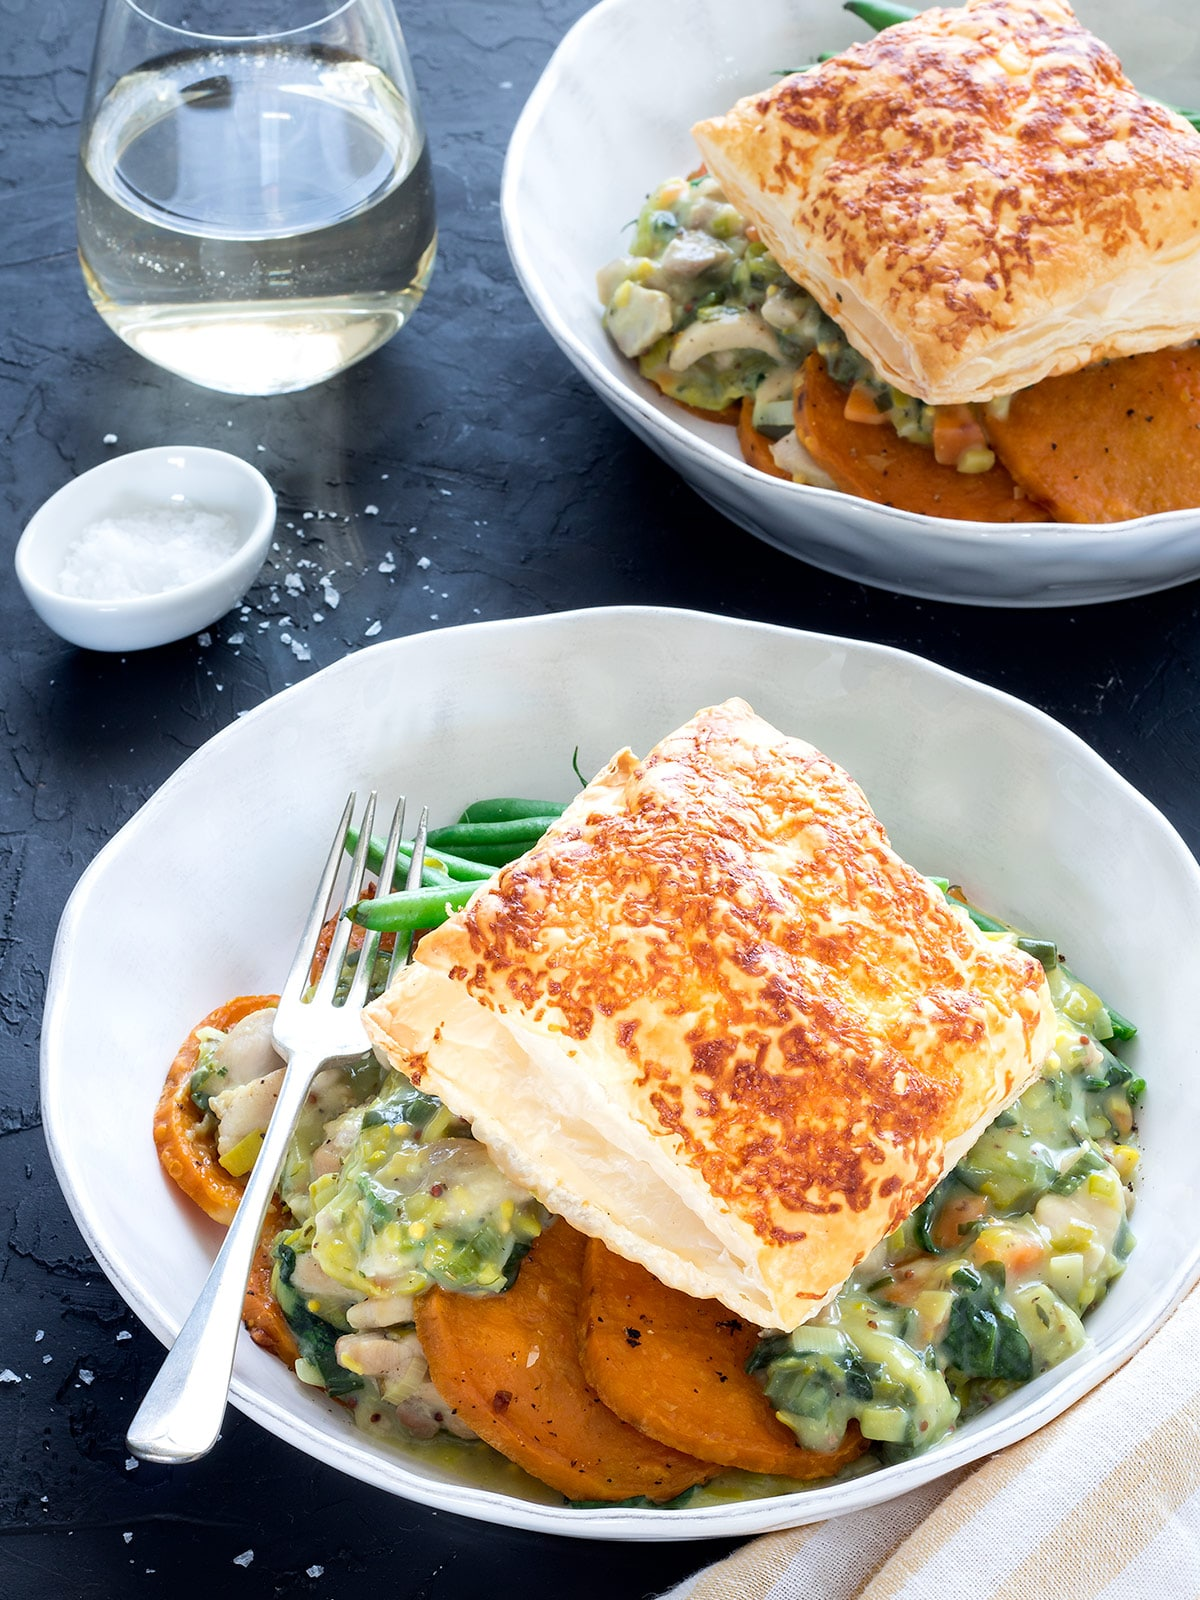 Easy chicken and leek pie is such great comfort food. This deconstructed version has kumara rounds for the base and a cheesy pastry topper.